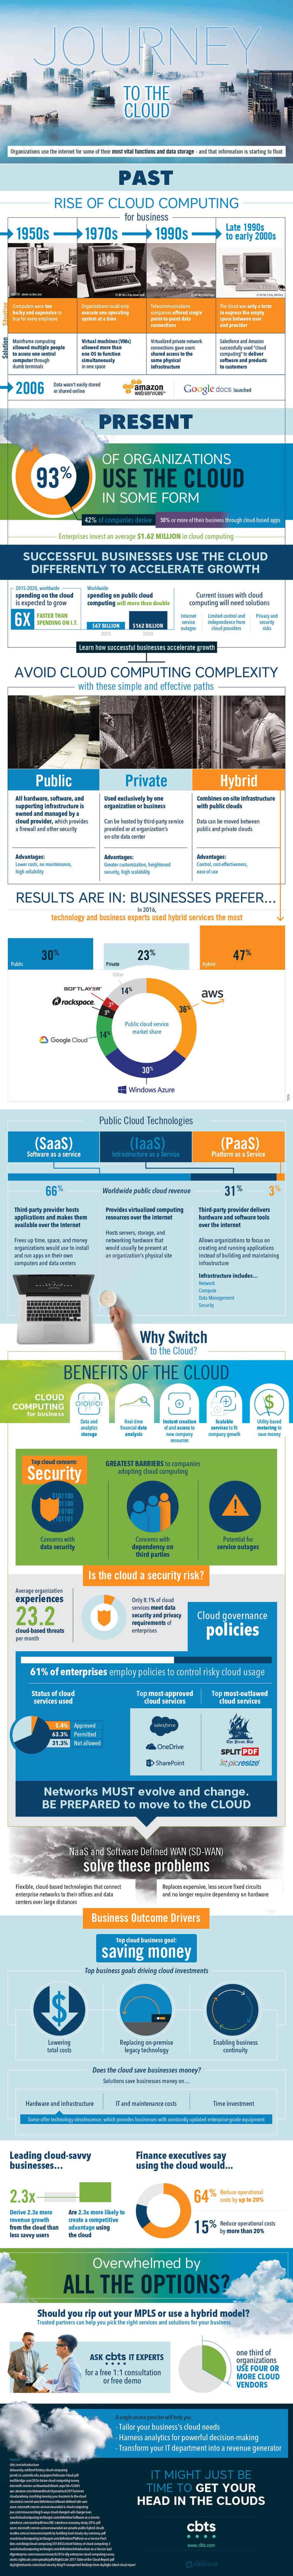 CBTS-Journey-to-the-Cloud-Infographic